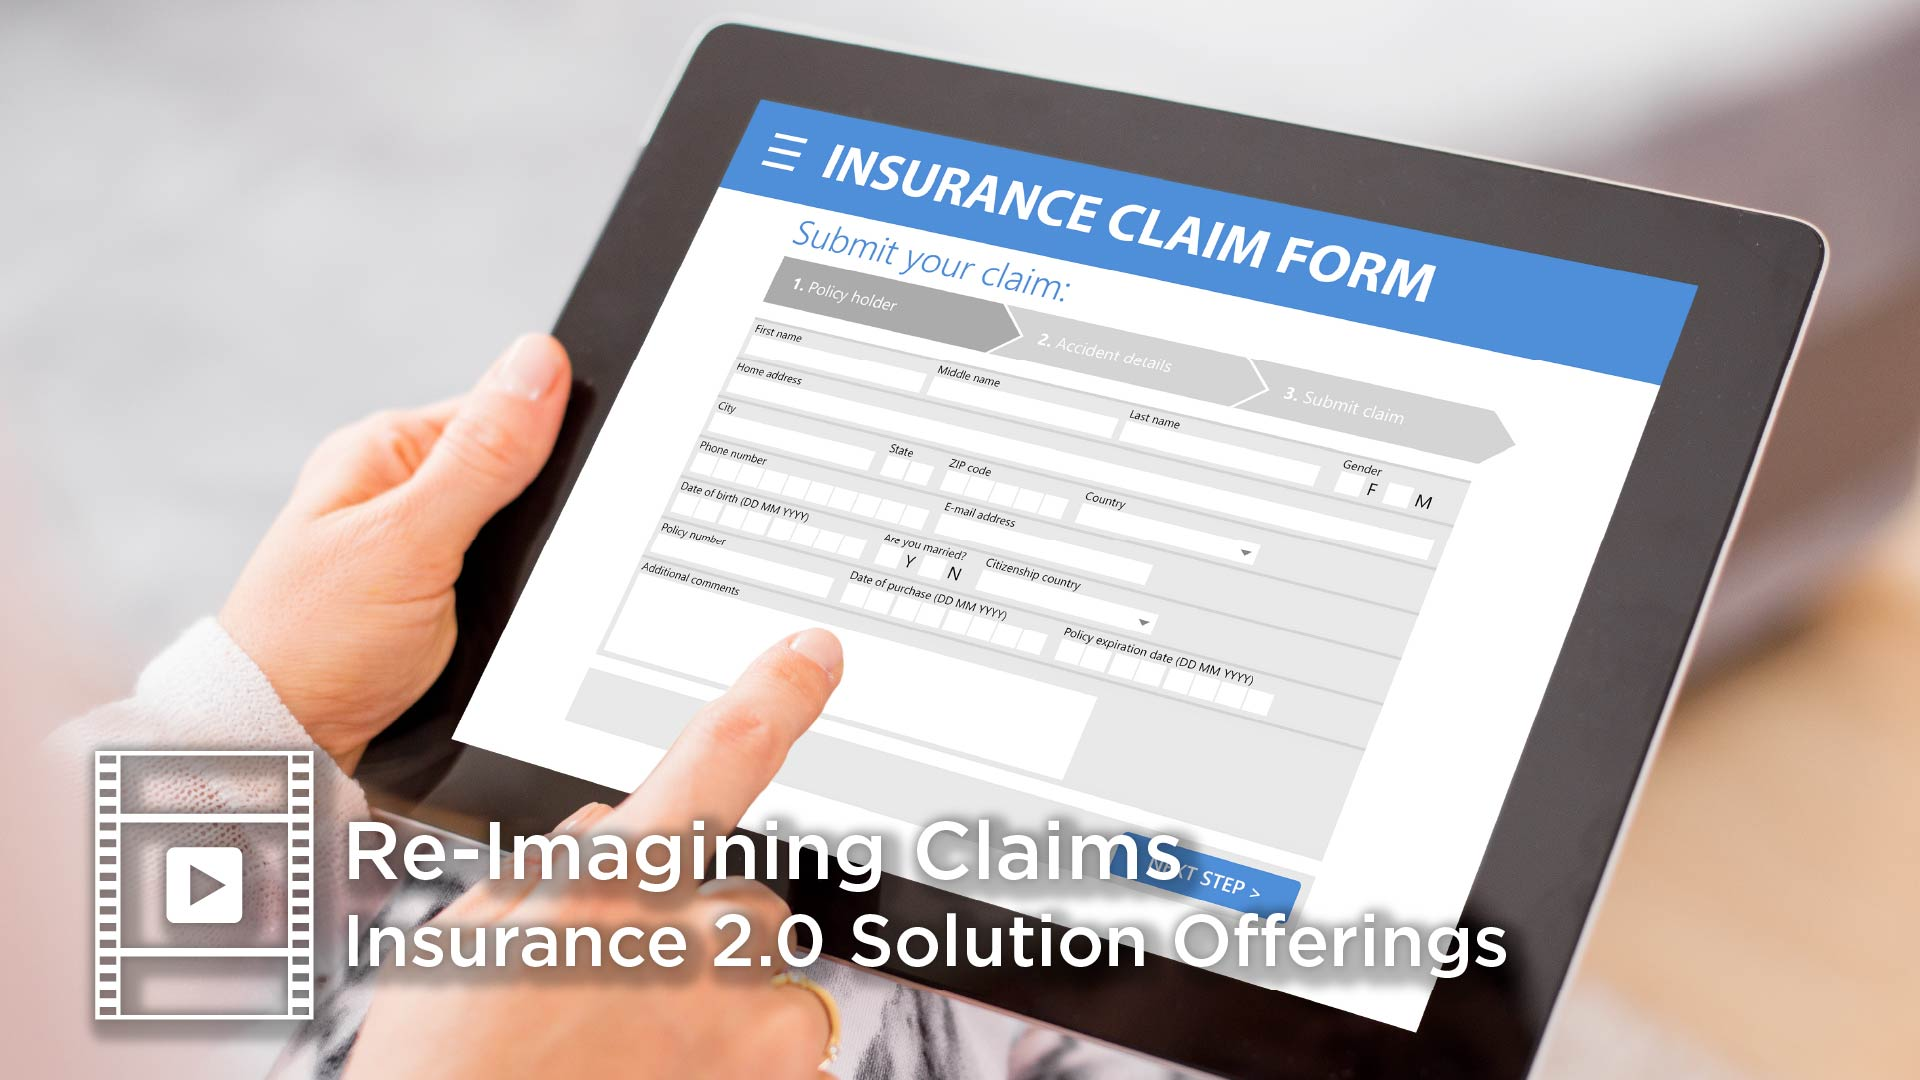 Insurance 2.0: Re-Imagining Claims